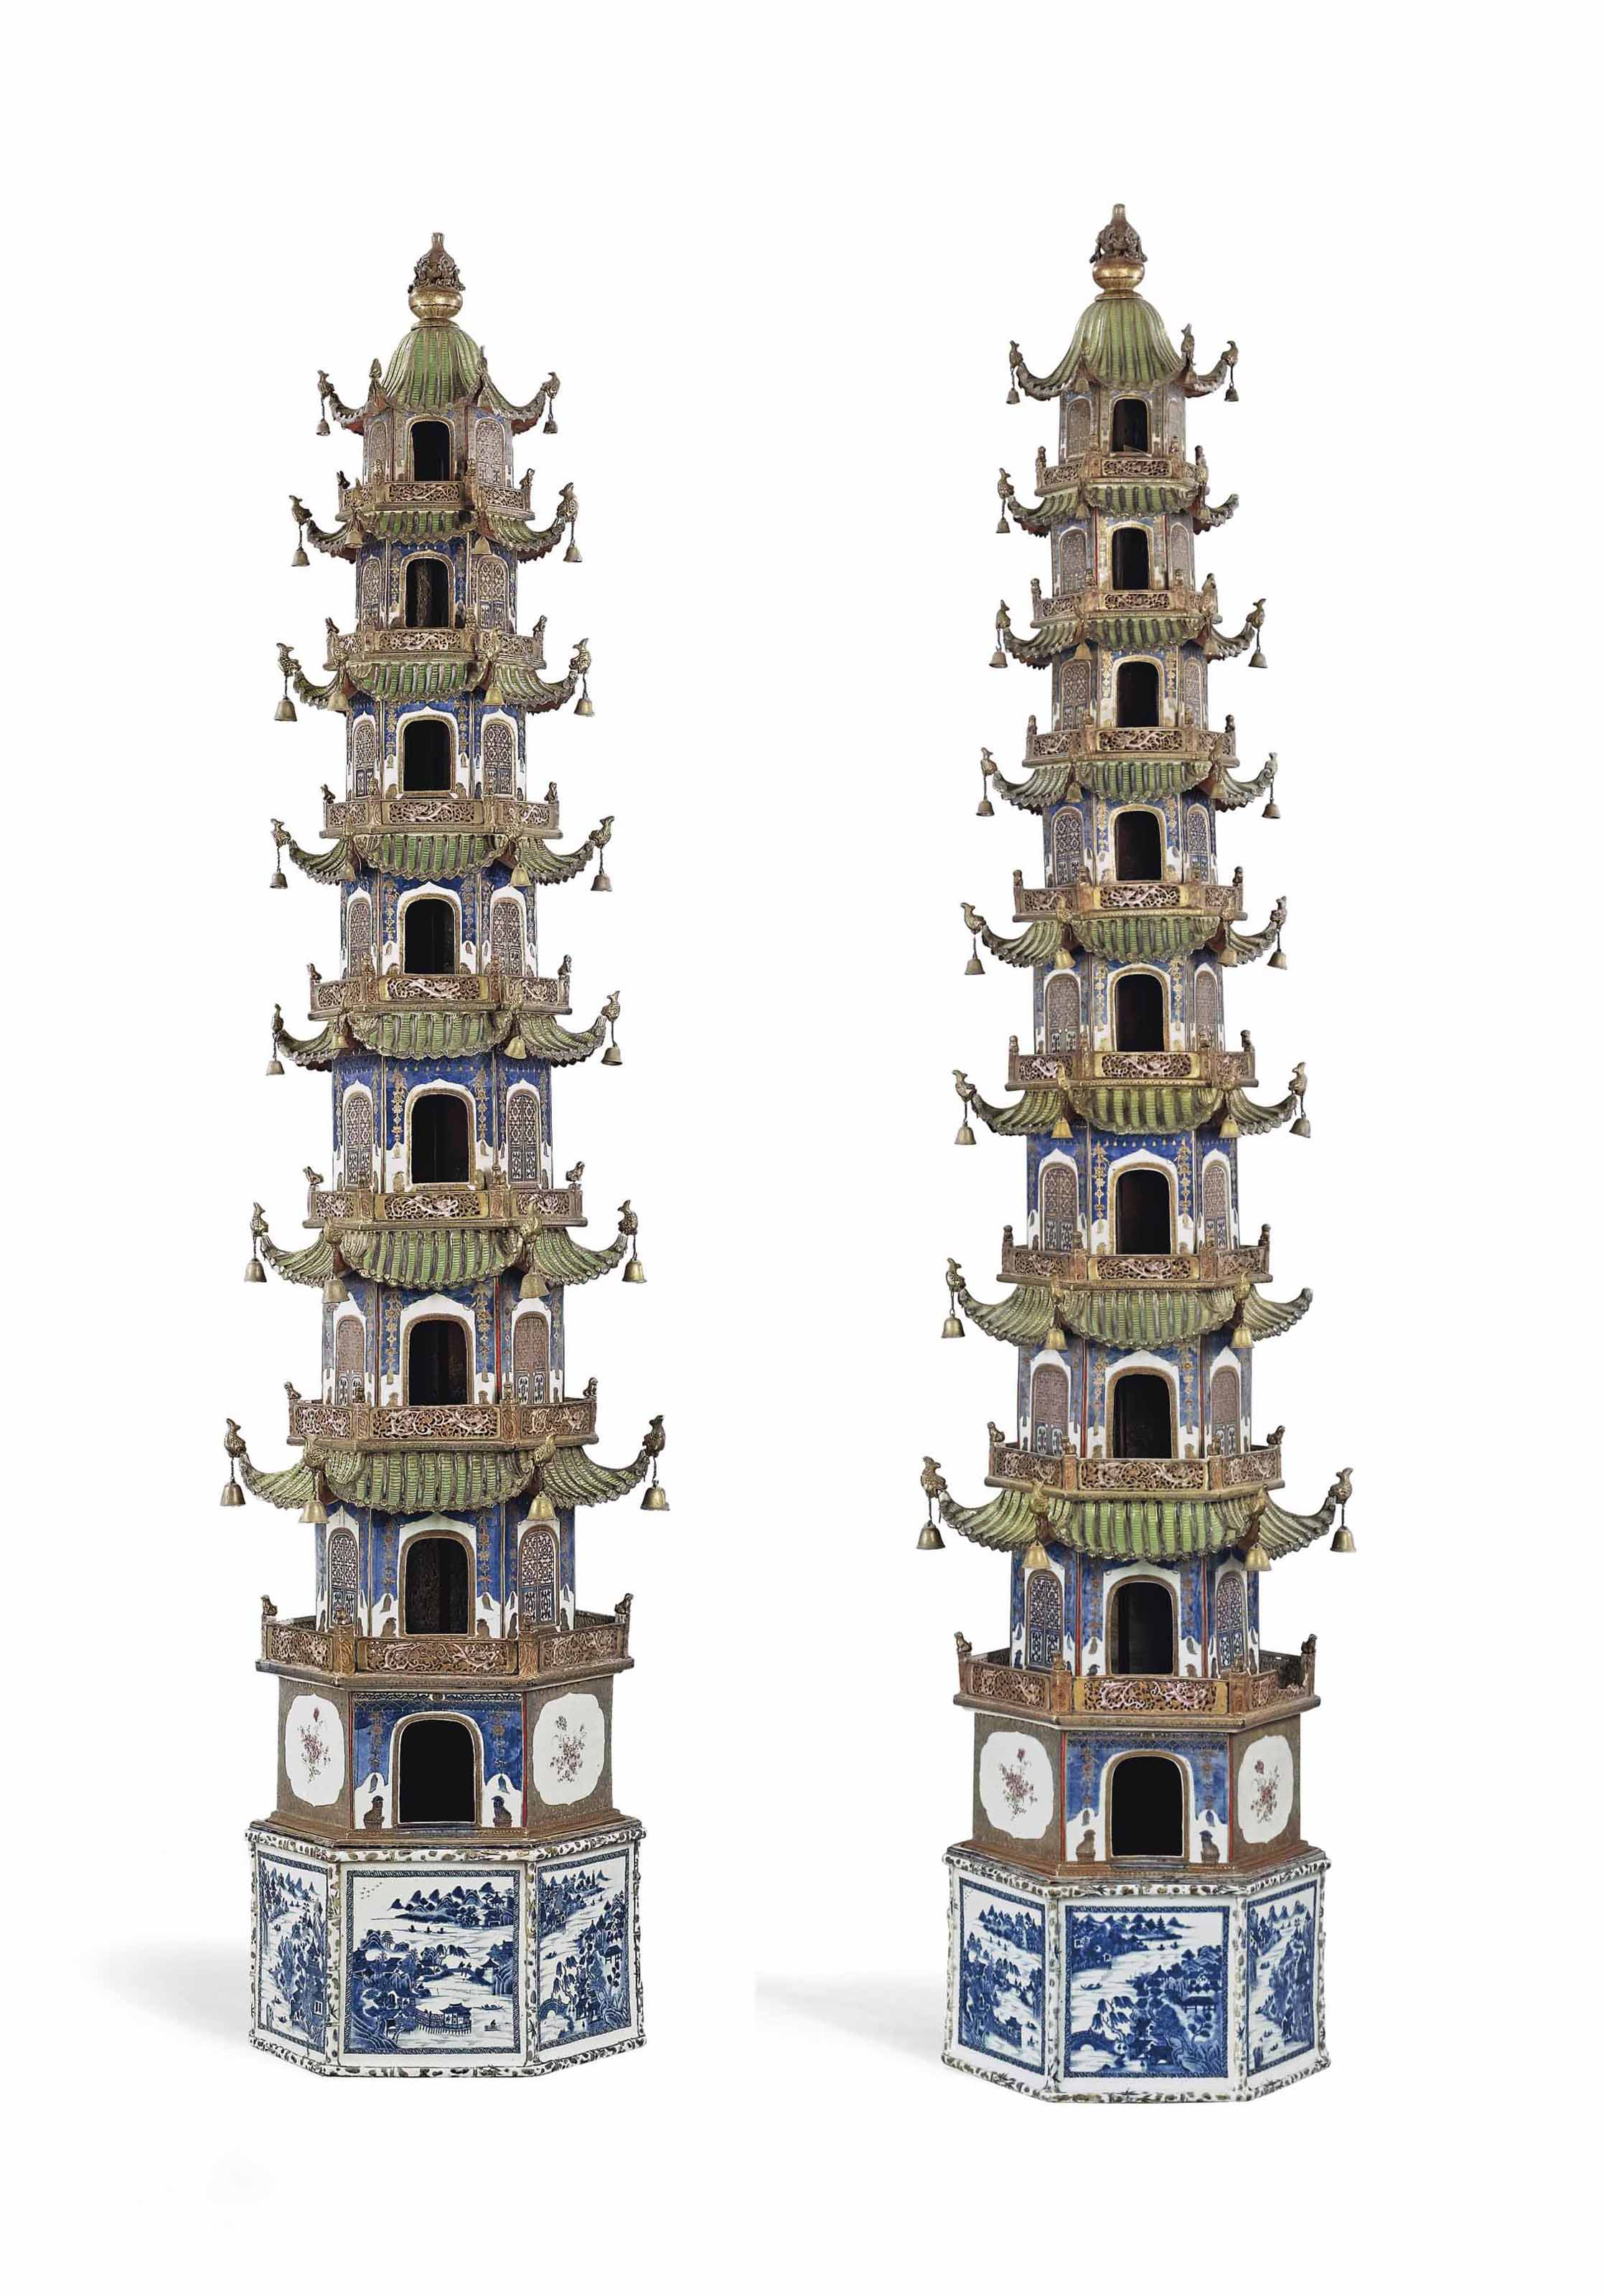 A MAGNIFICENT, EXTREMELY RARE PAIR OF MASSIVE FAMILLE ROSE MODELS OF PAGODAS